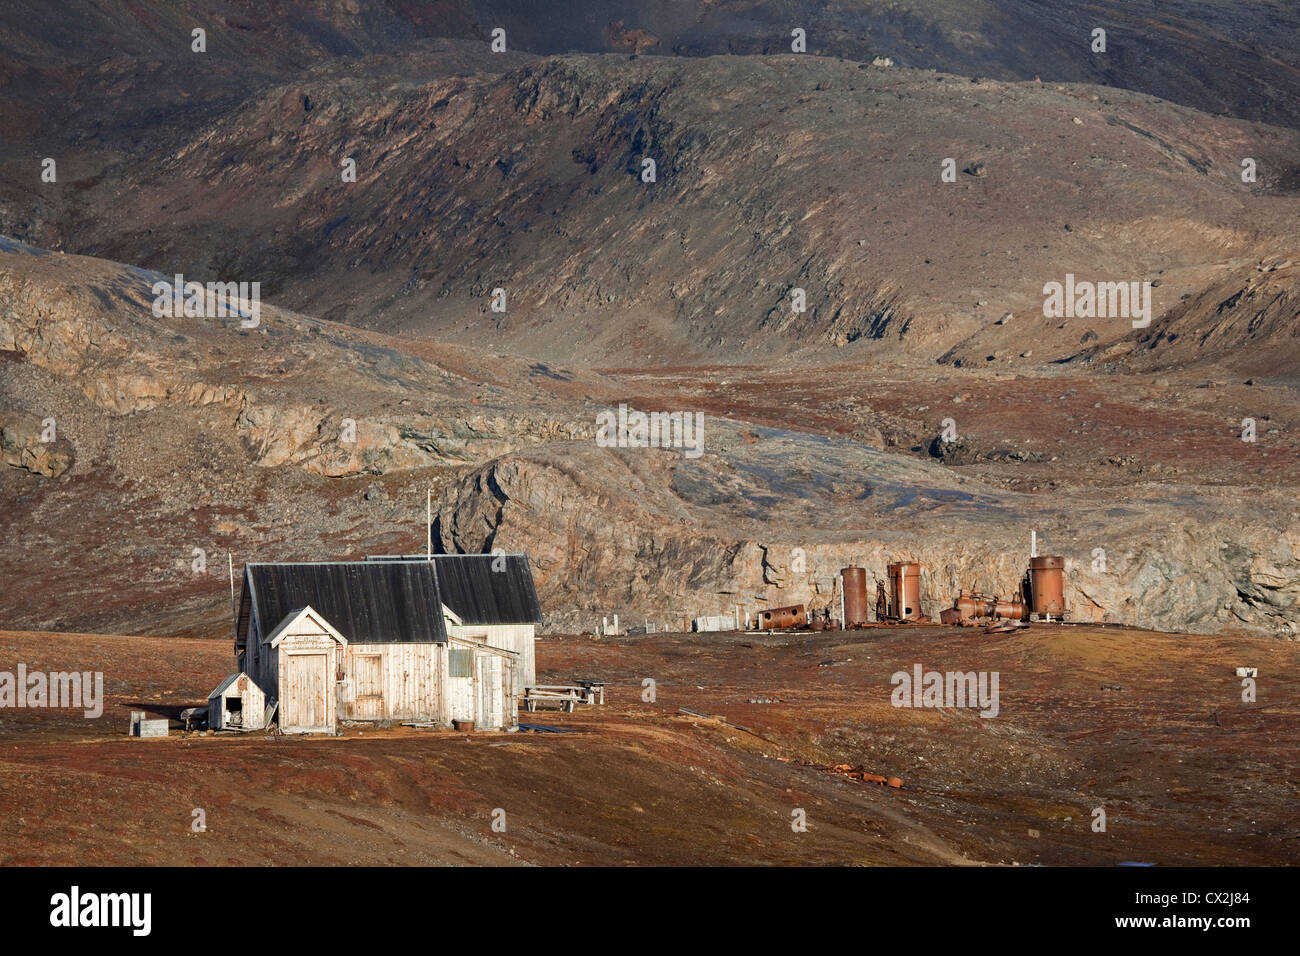 Wooden huts of Camp Mansfield, old marble quarry at Blomstrandhalvøya, Svalbard, Spitsbergen, Norway - Stock Image